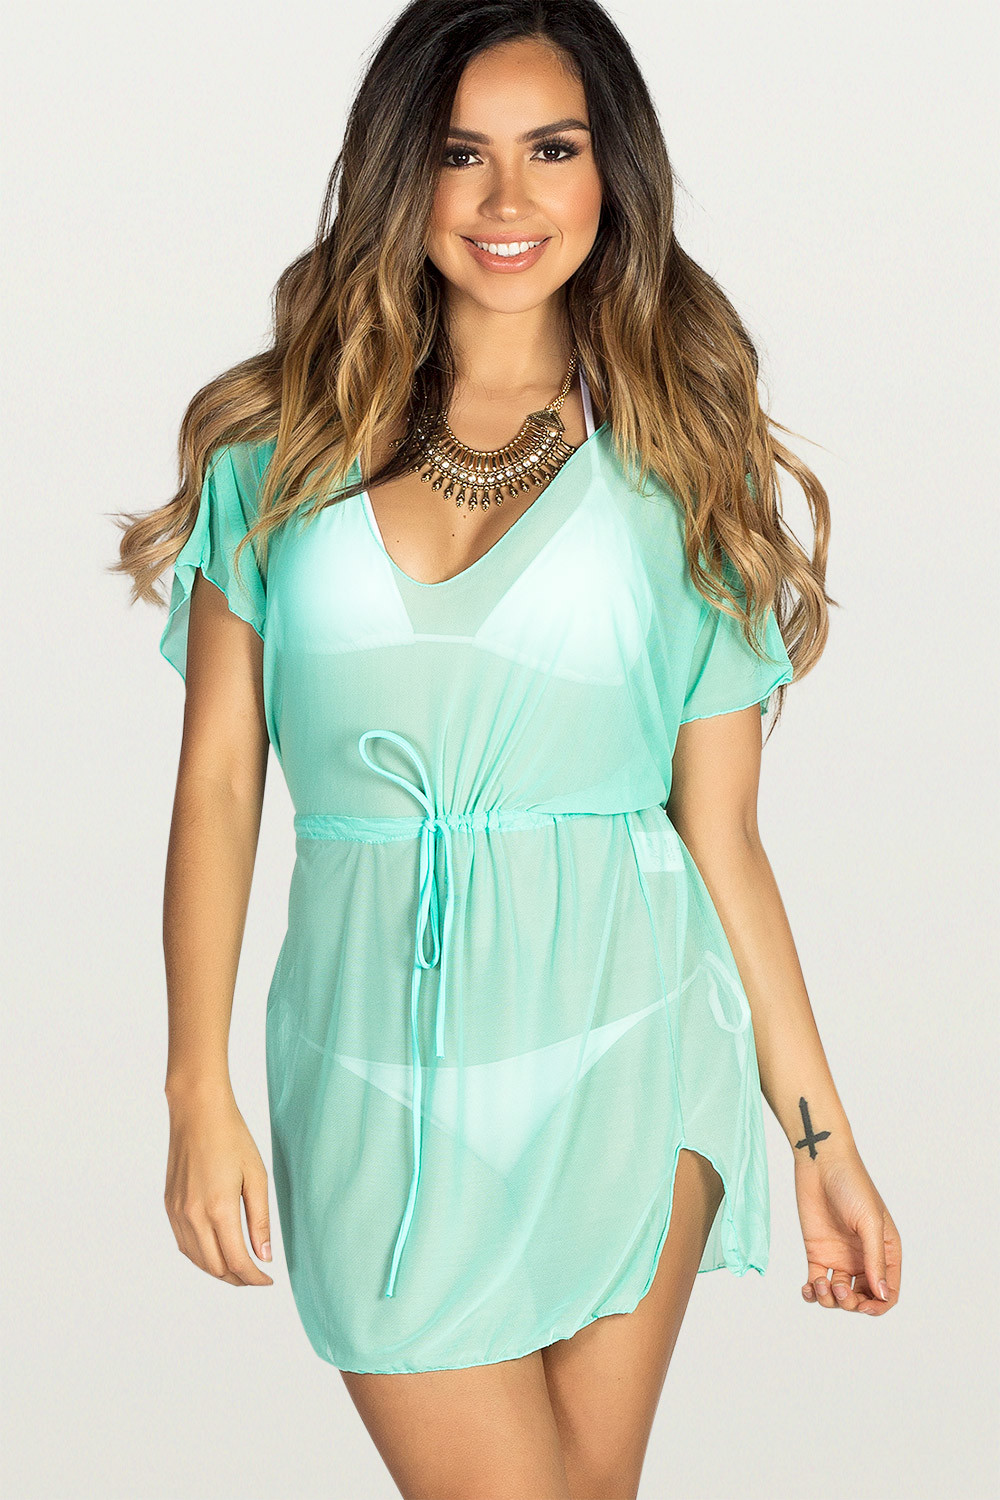 239f0f5ebe Afterparty Mint Mesh Hooded Cinch Waist Beach Cover Up